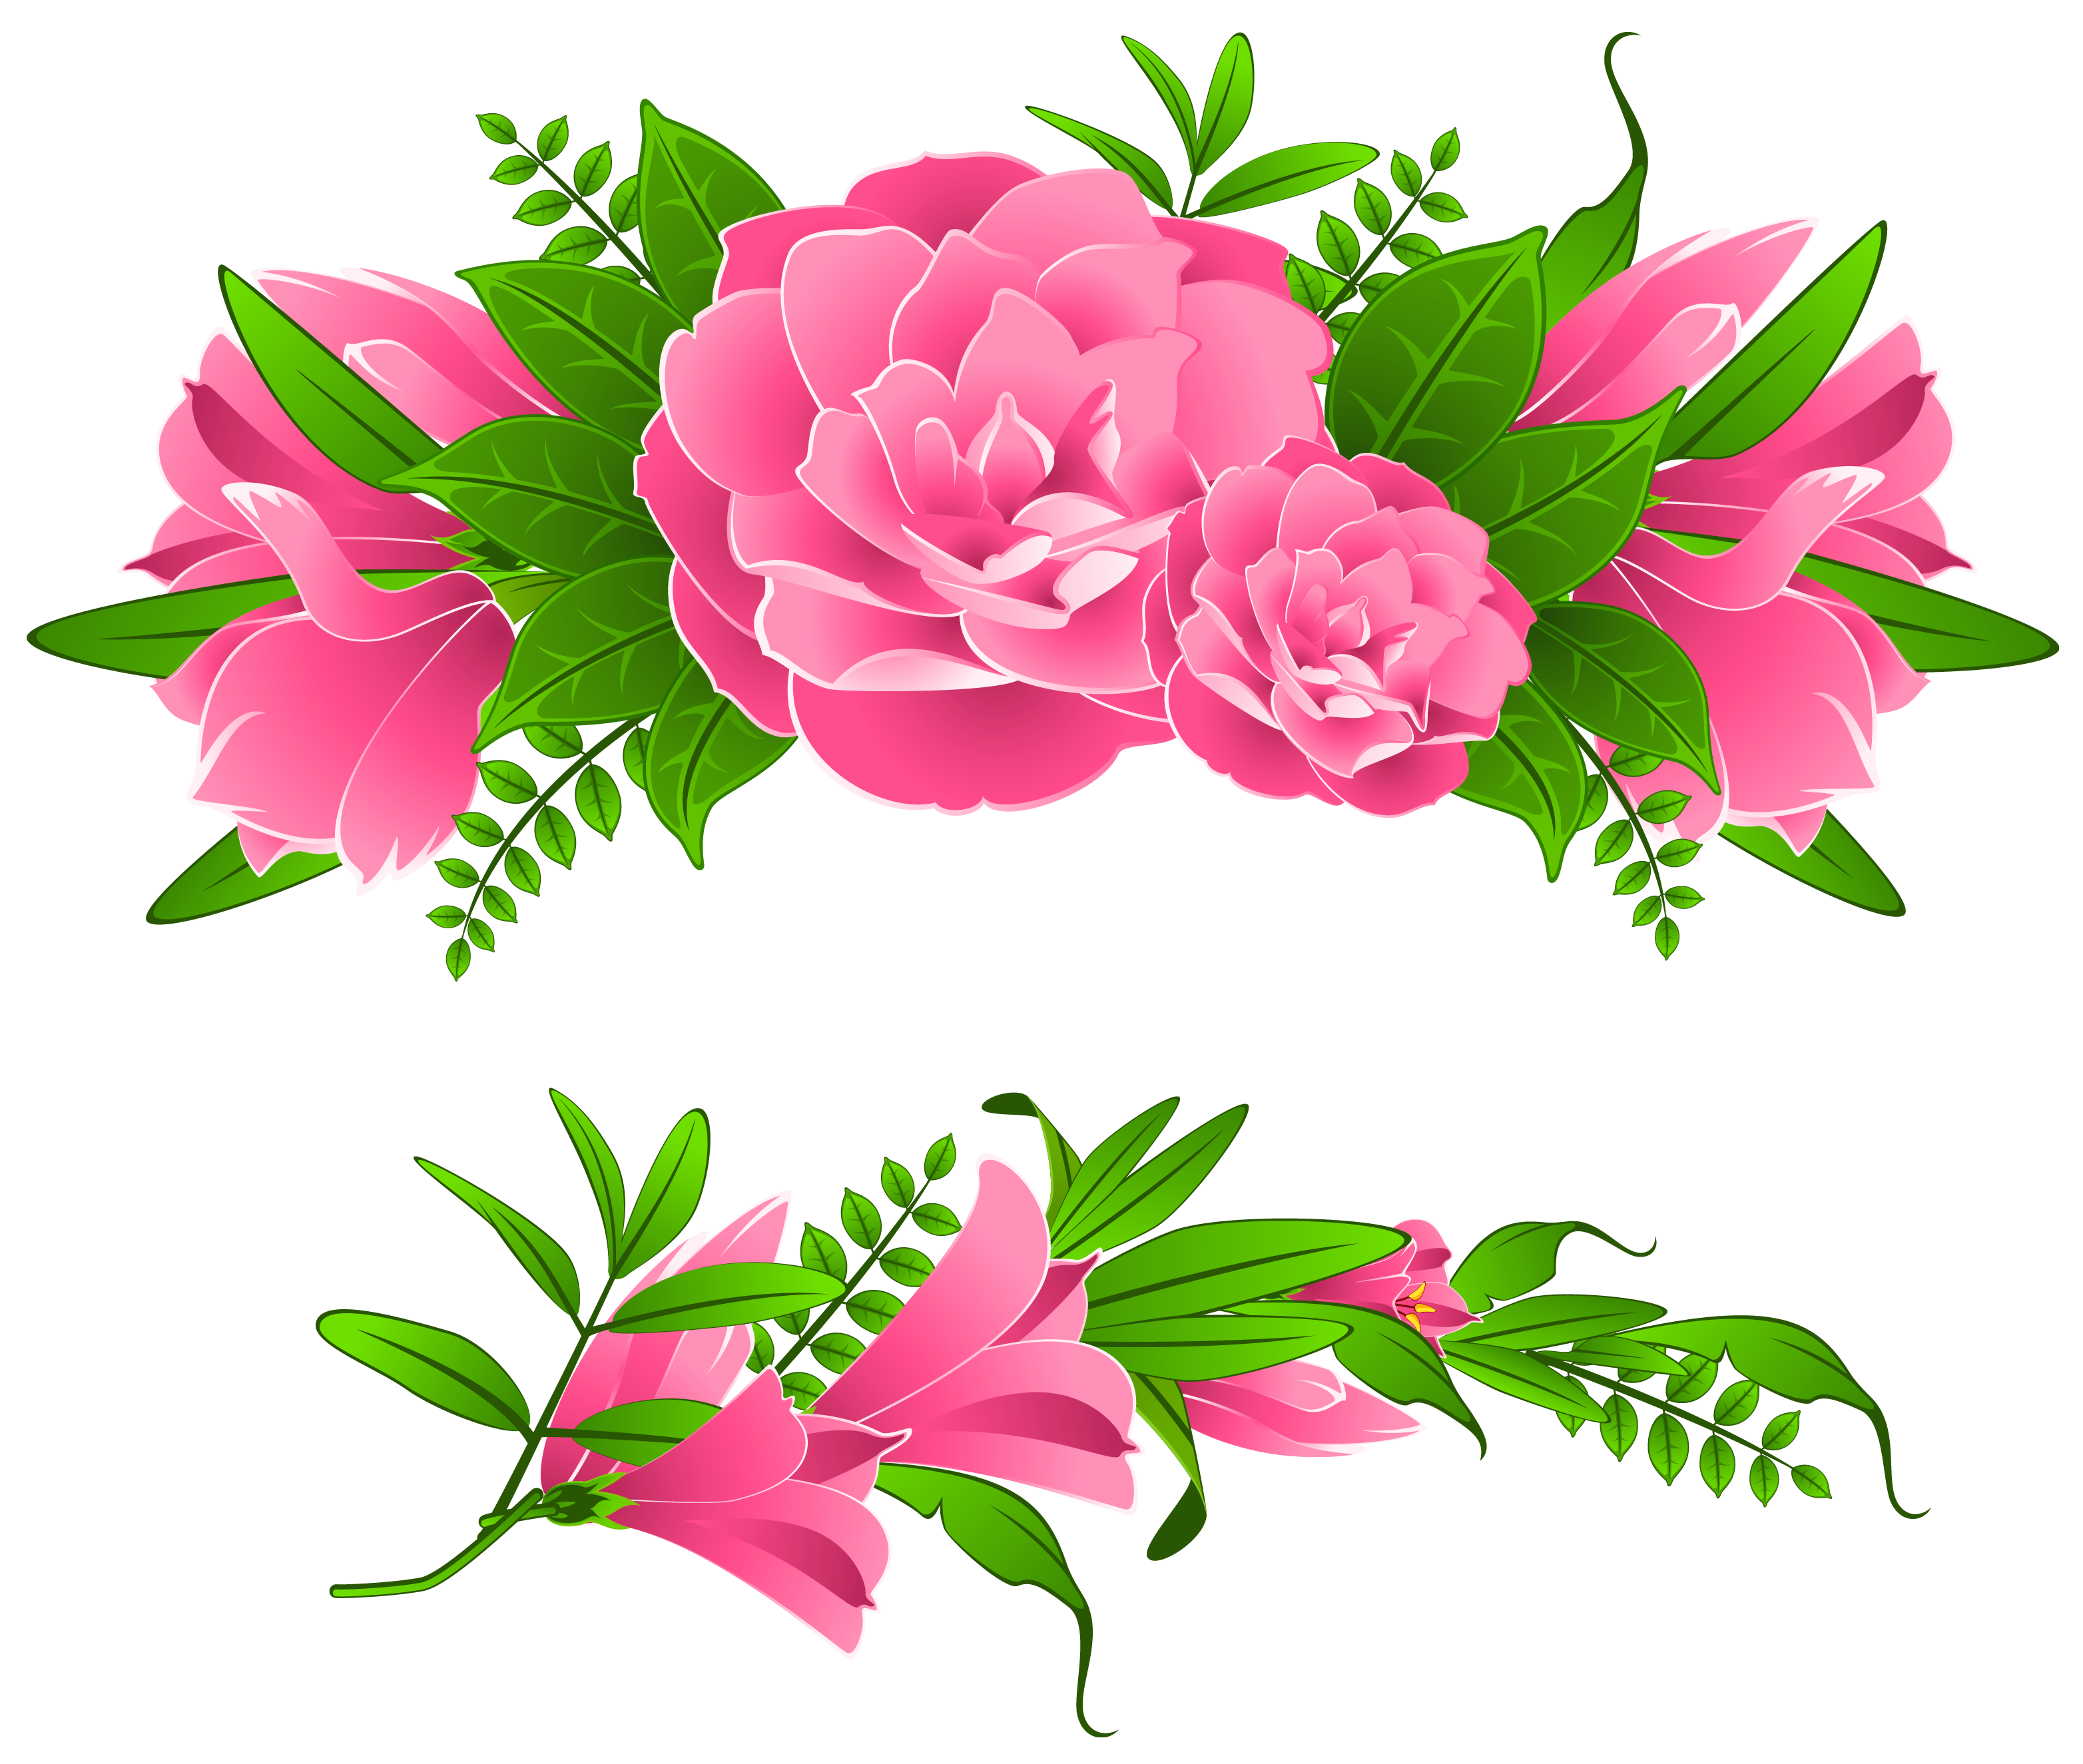 download flowers borders free png photo images and clipart freepngimg rh freepngimg com free pink flower border clip art free pink flower border clip art